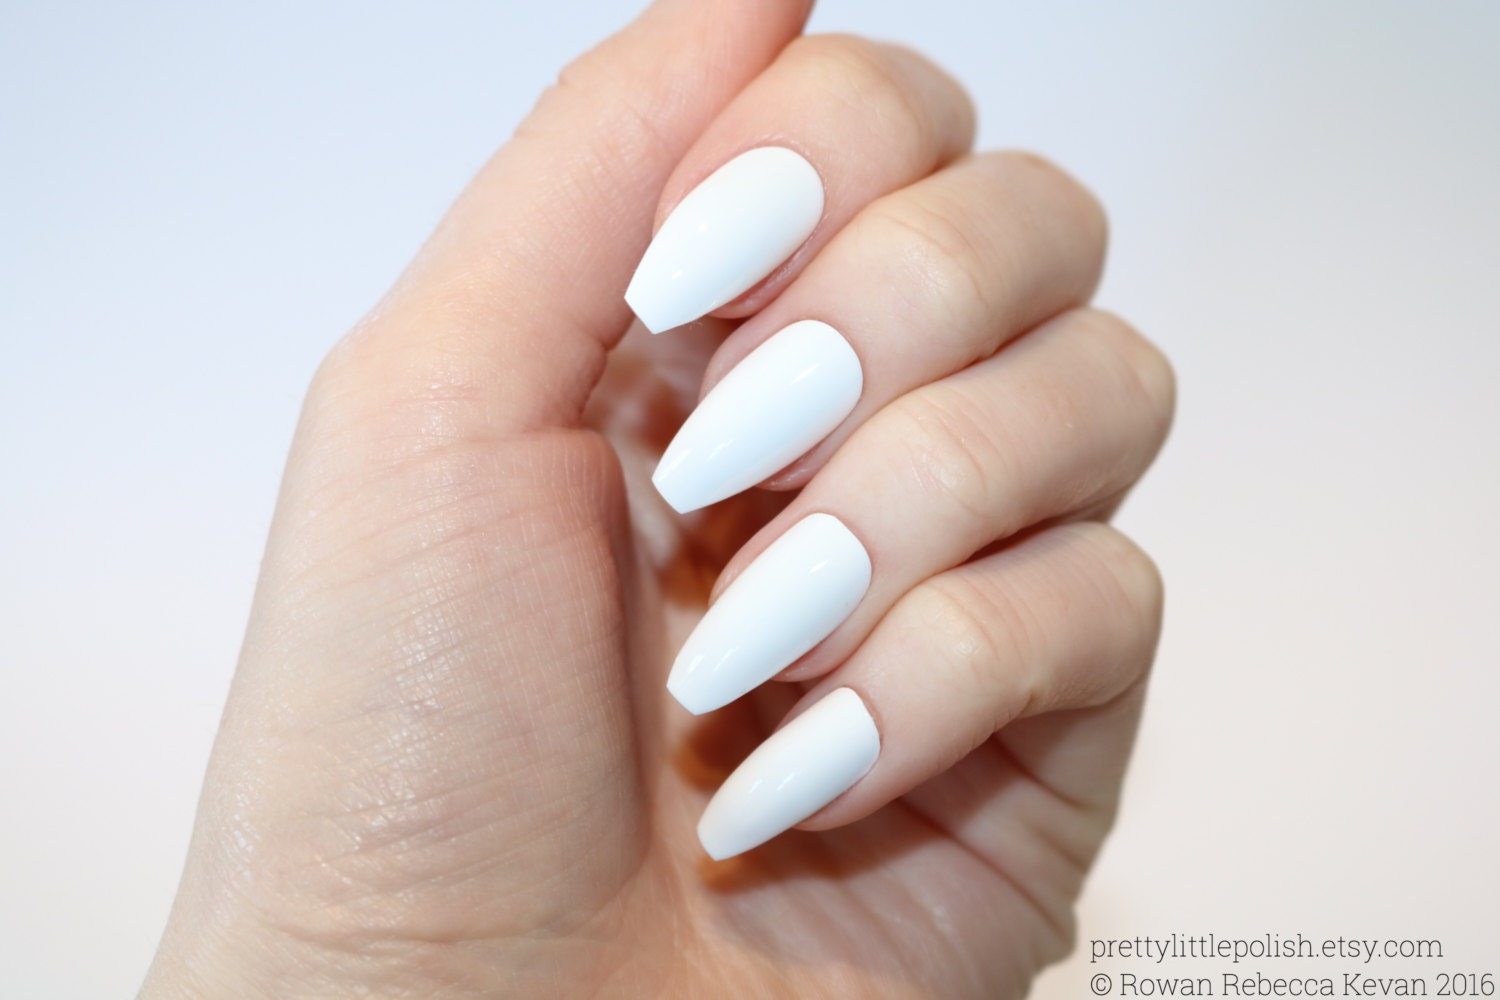 Forum on this topic: How to Do Stiletto Nails, how-to-do-stiletto-nails/